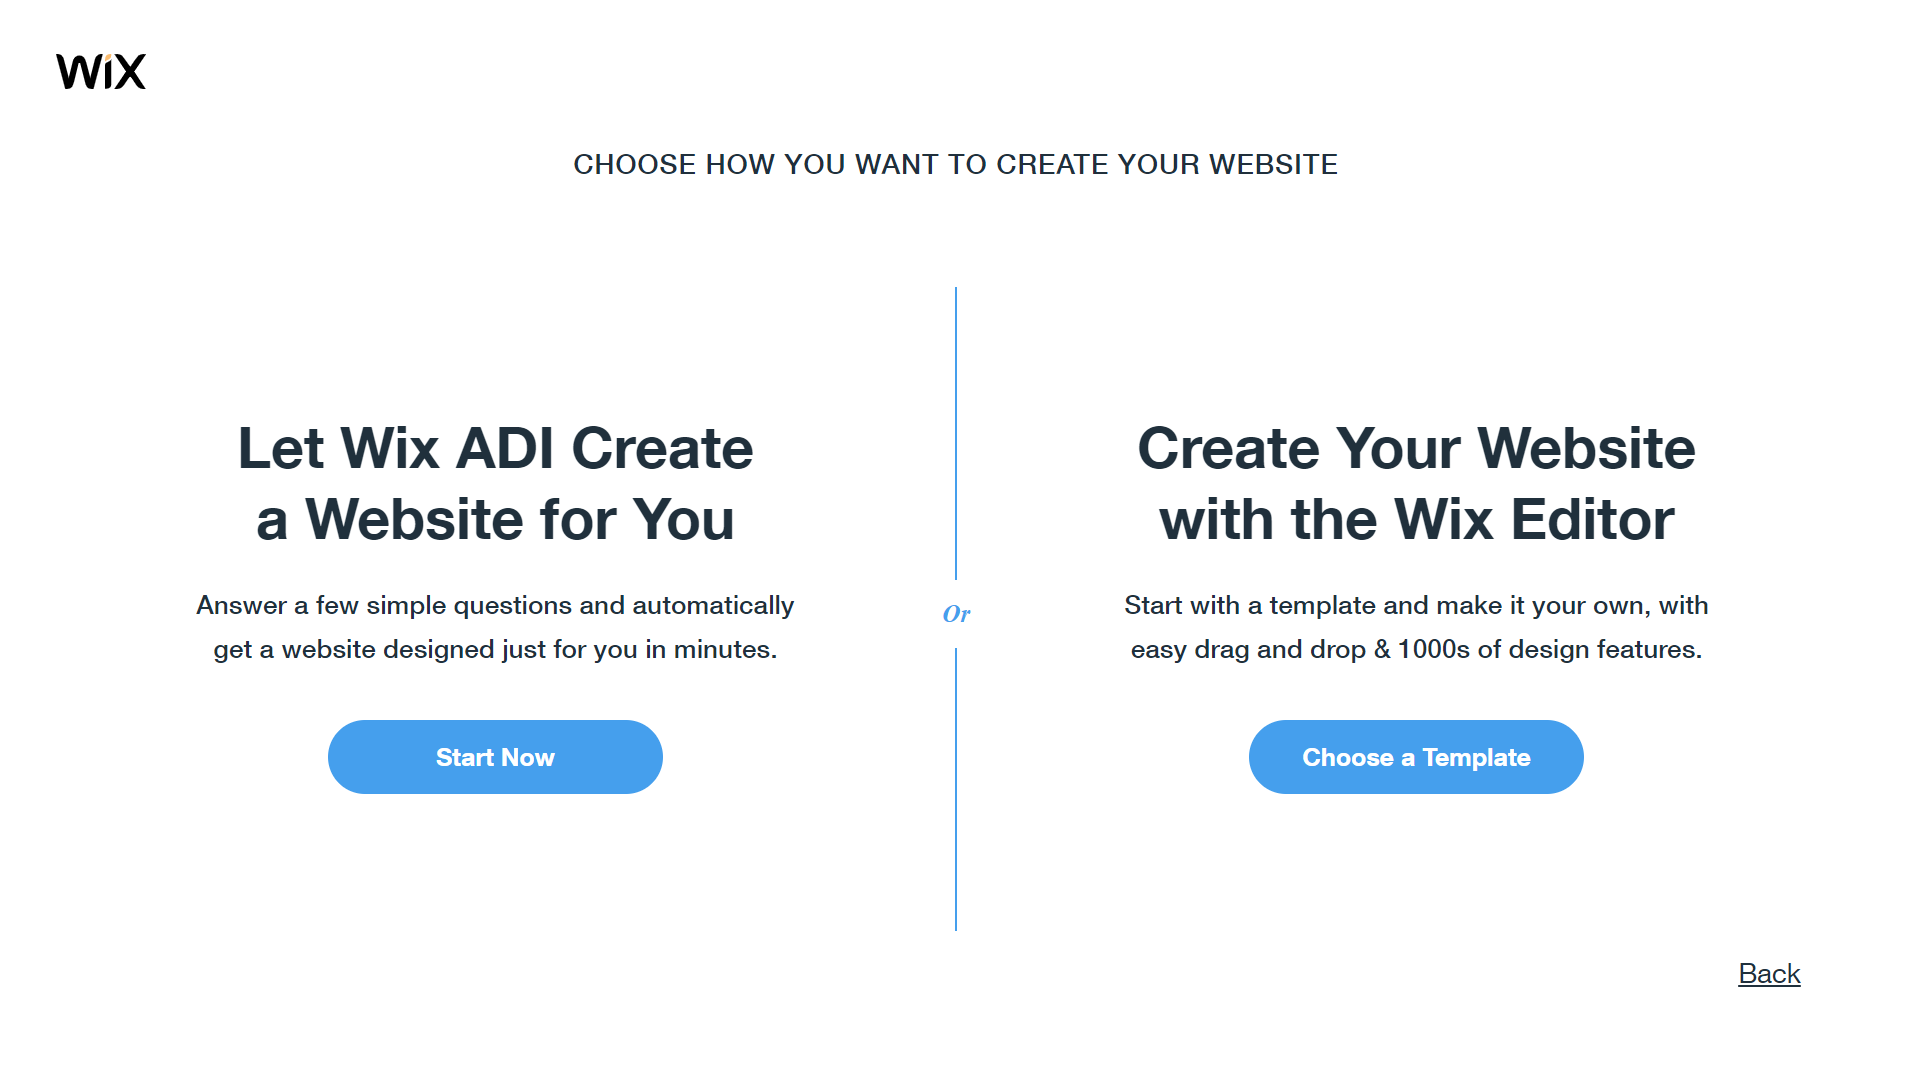 wix website creation choice page